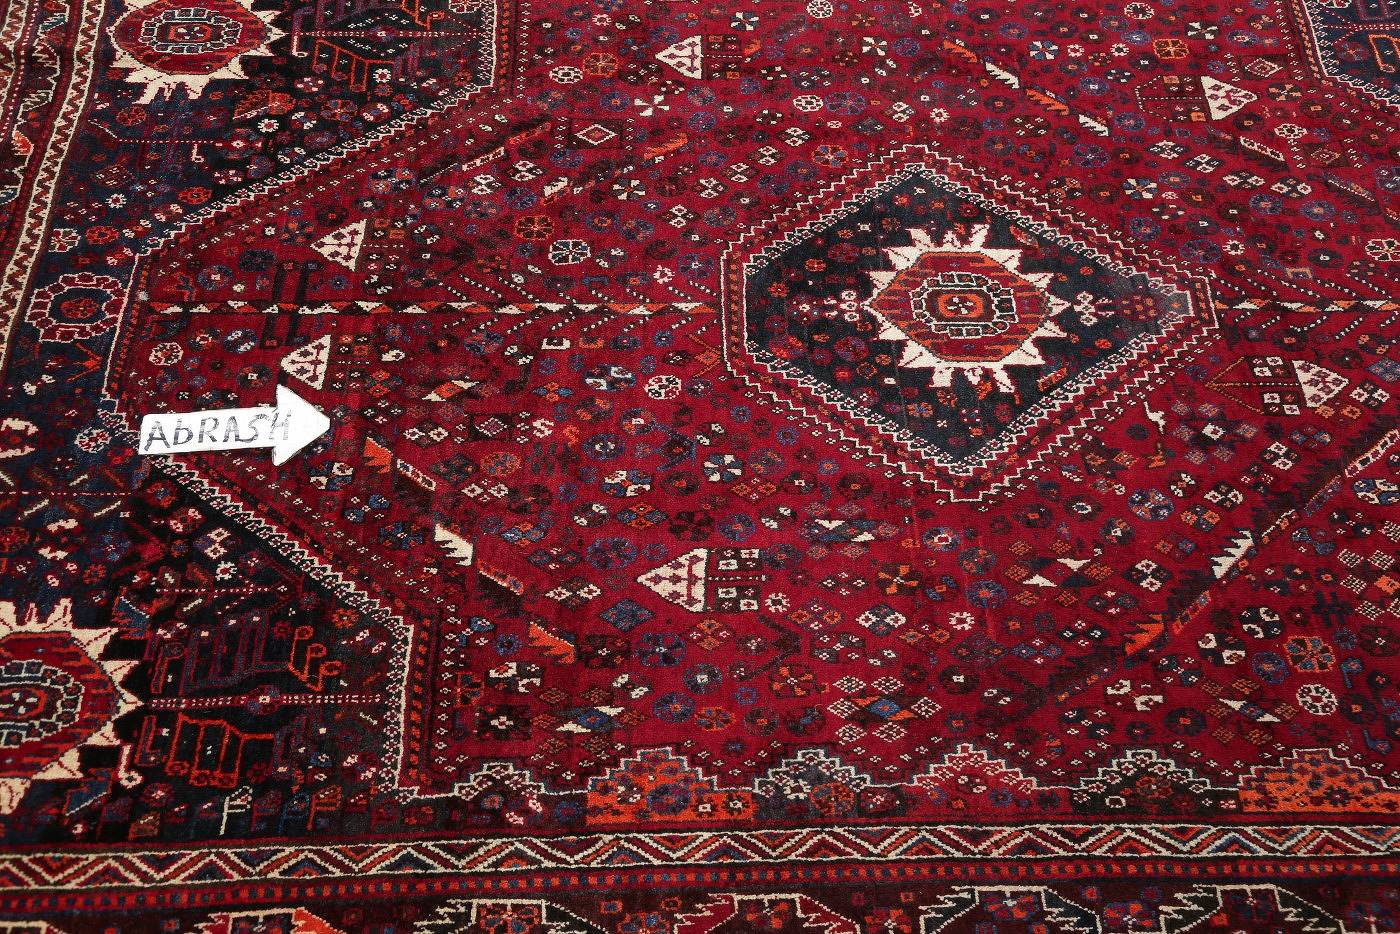 Antique Red Tribal Geometric Qashqai Persian Hand-Knotted 5x8 Wool Area Rug image 11